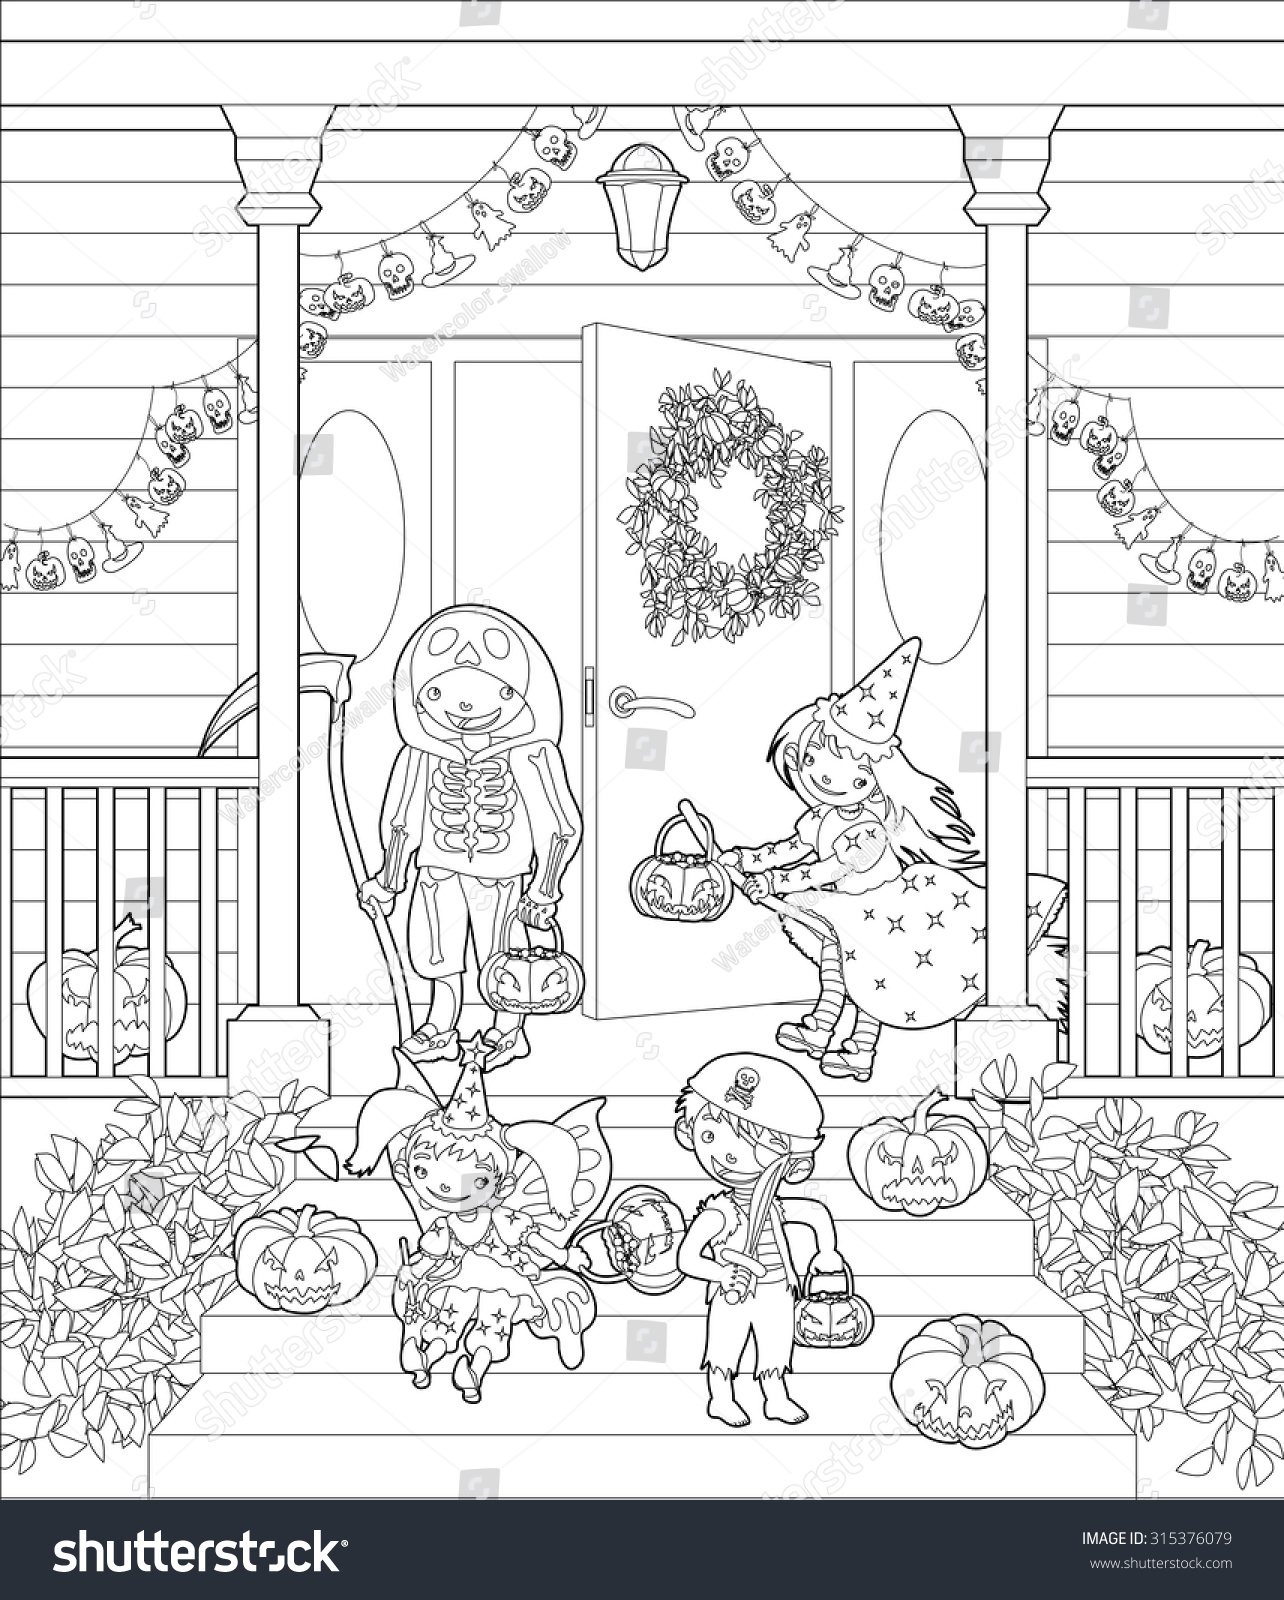 Halloween Coloring Page. Costumed Kids Dressed Up For ...